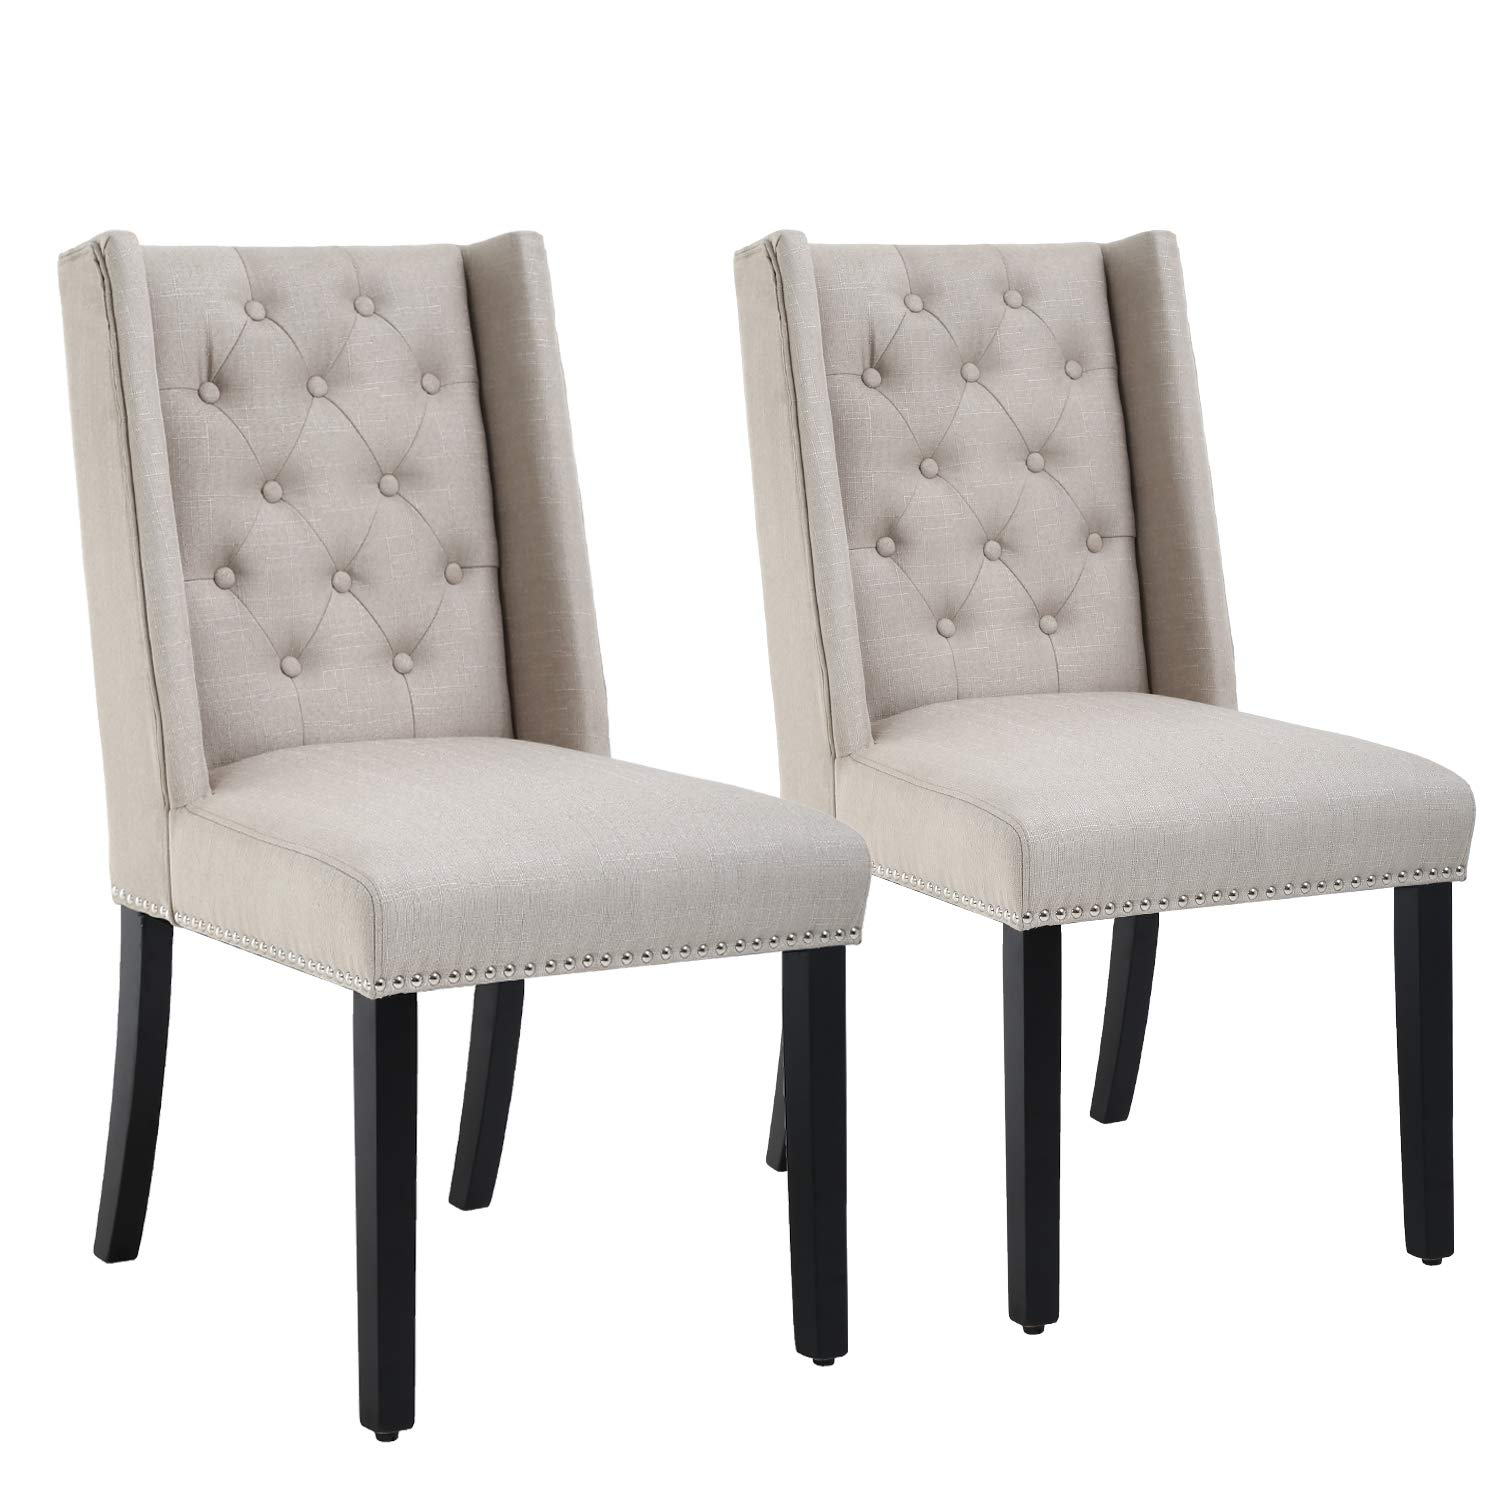 Dining Chairs Set of 2 Dining Room Chairs for Living Room Kitchen